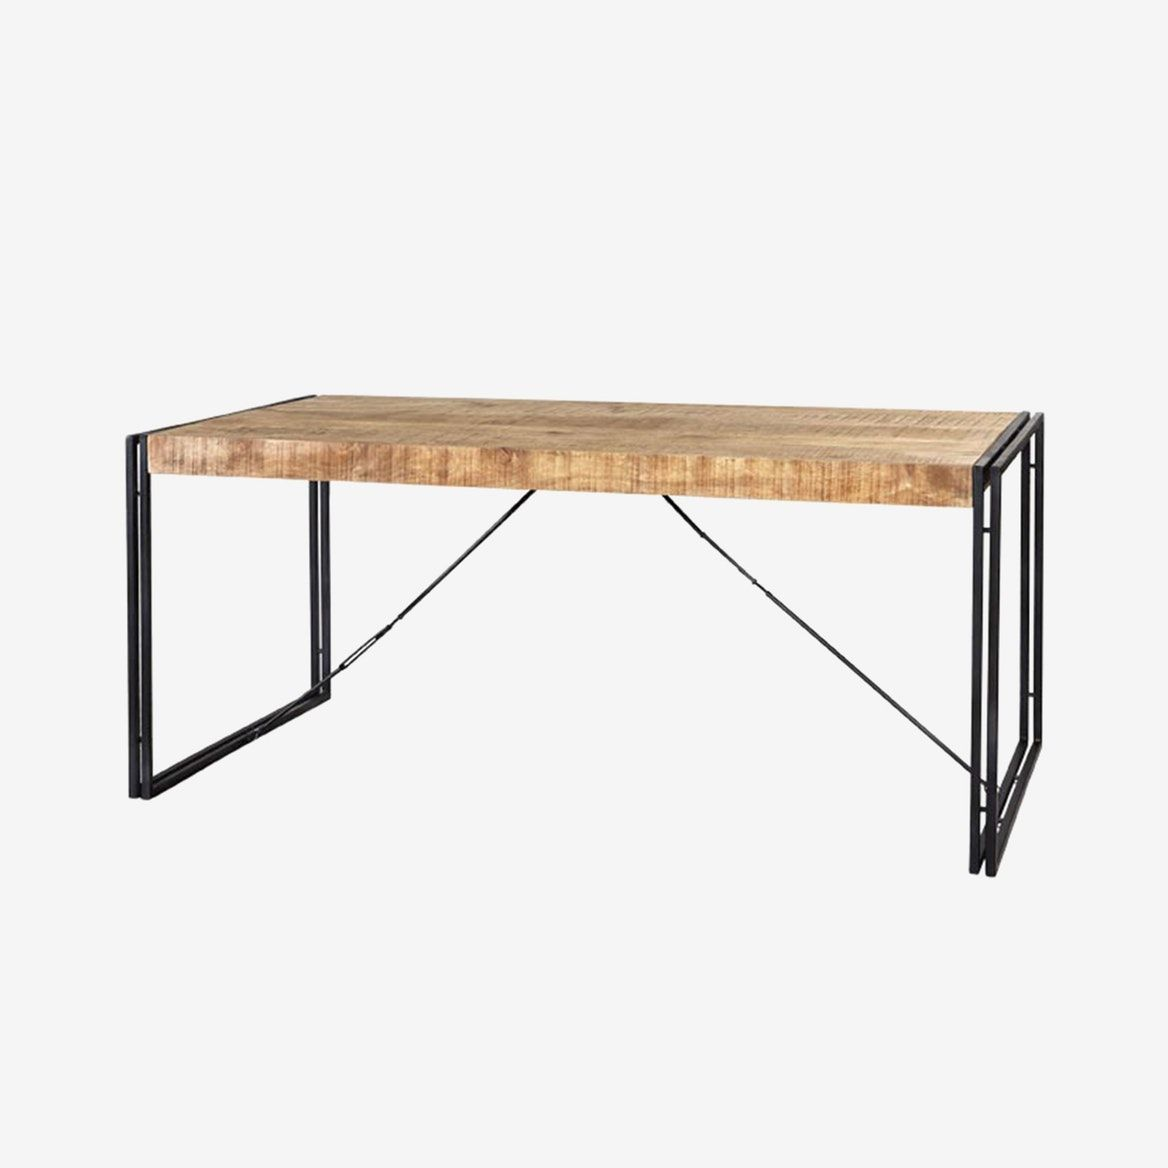 Surprising Mango Wood Metal Wood Dining Table Large Home Dining Gmtry Best Dining Table And Chair Ideas Images Gmtryco